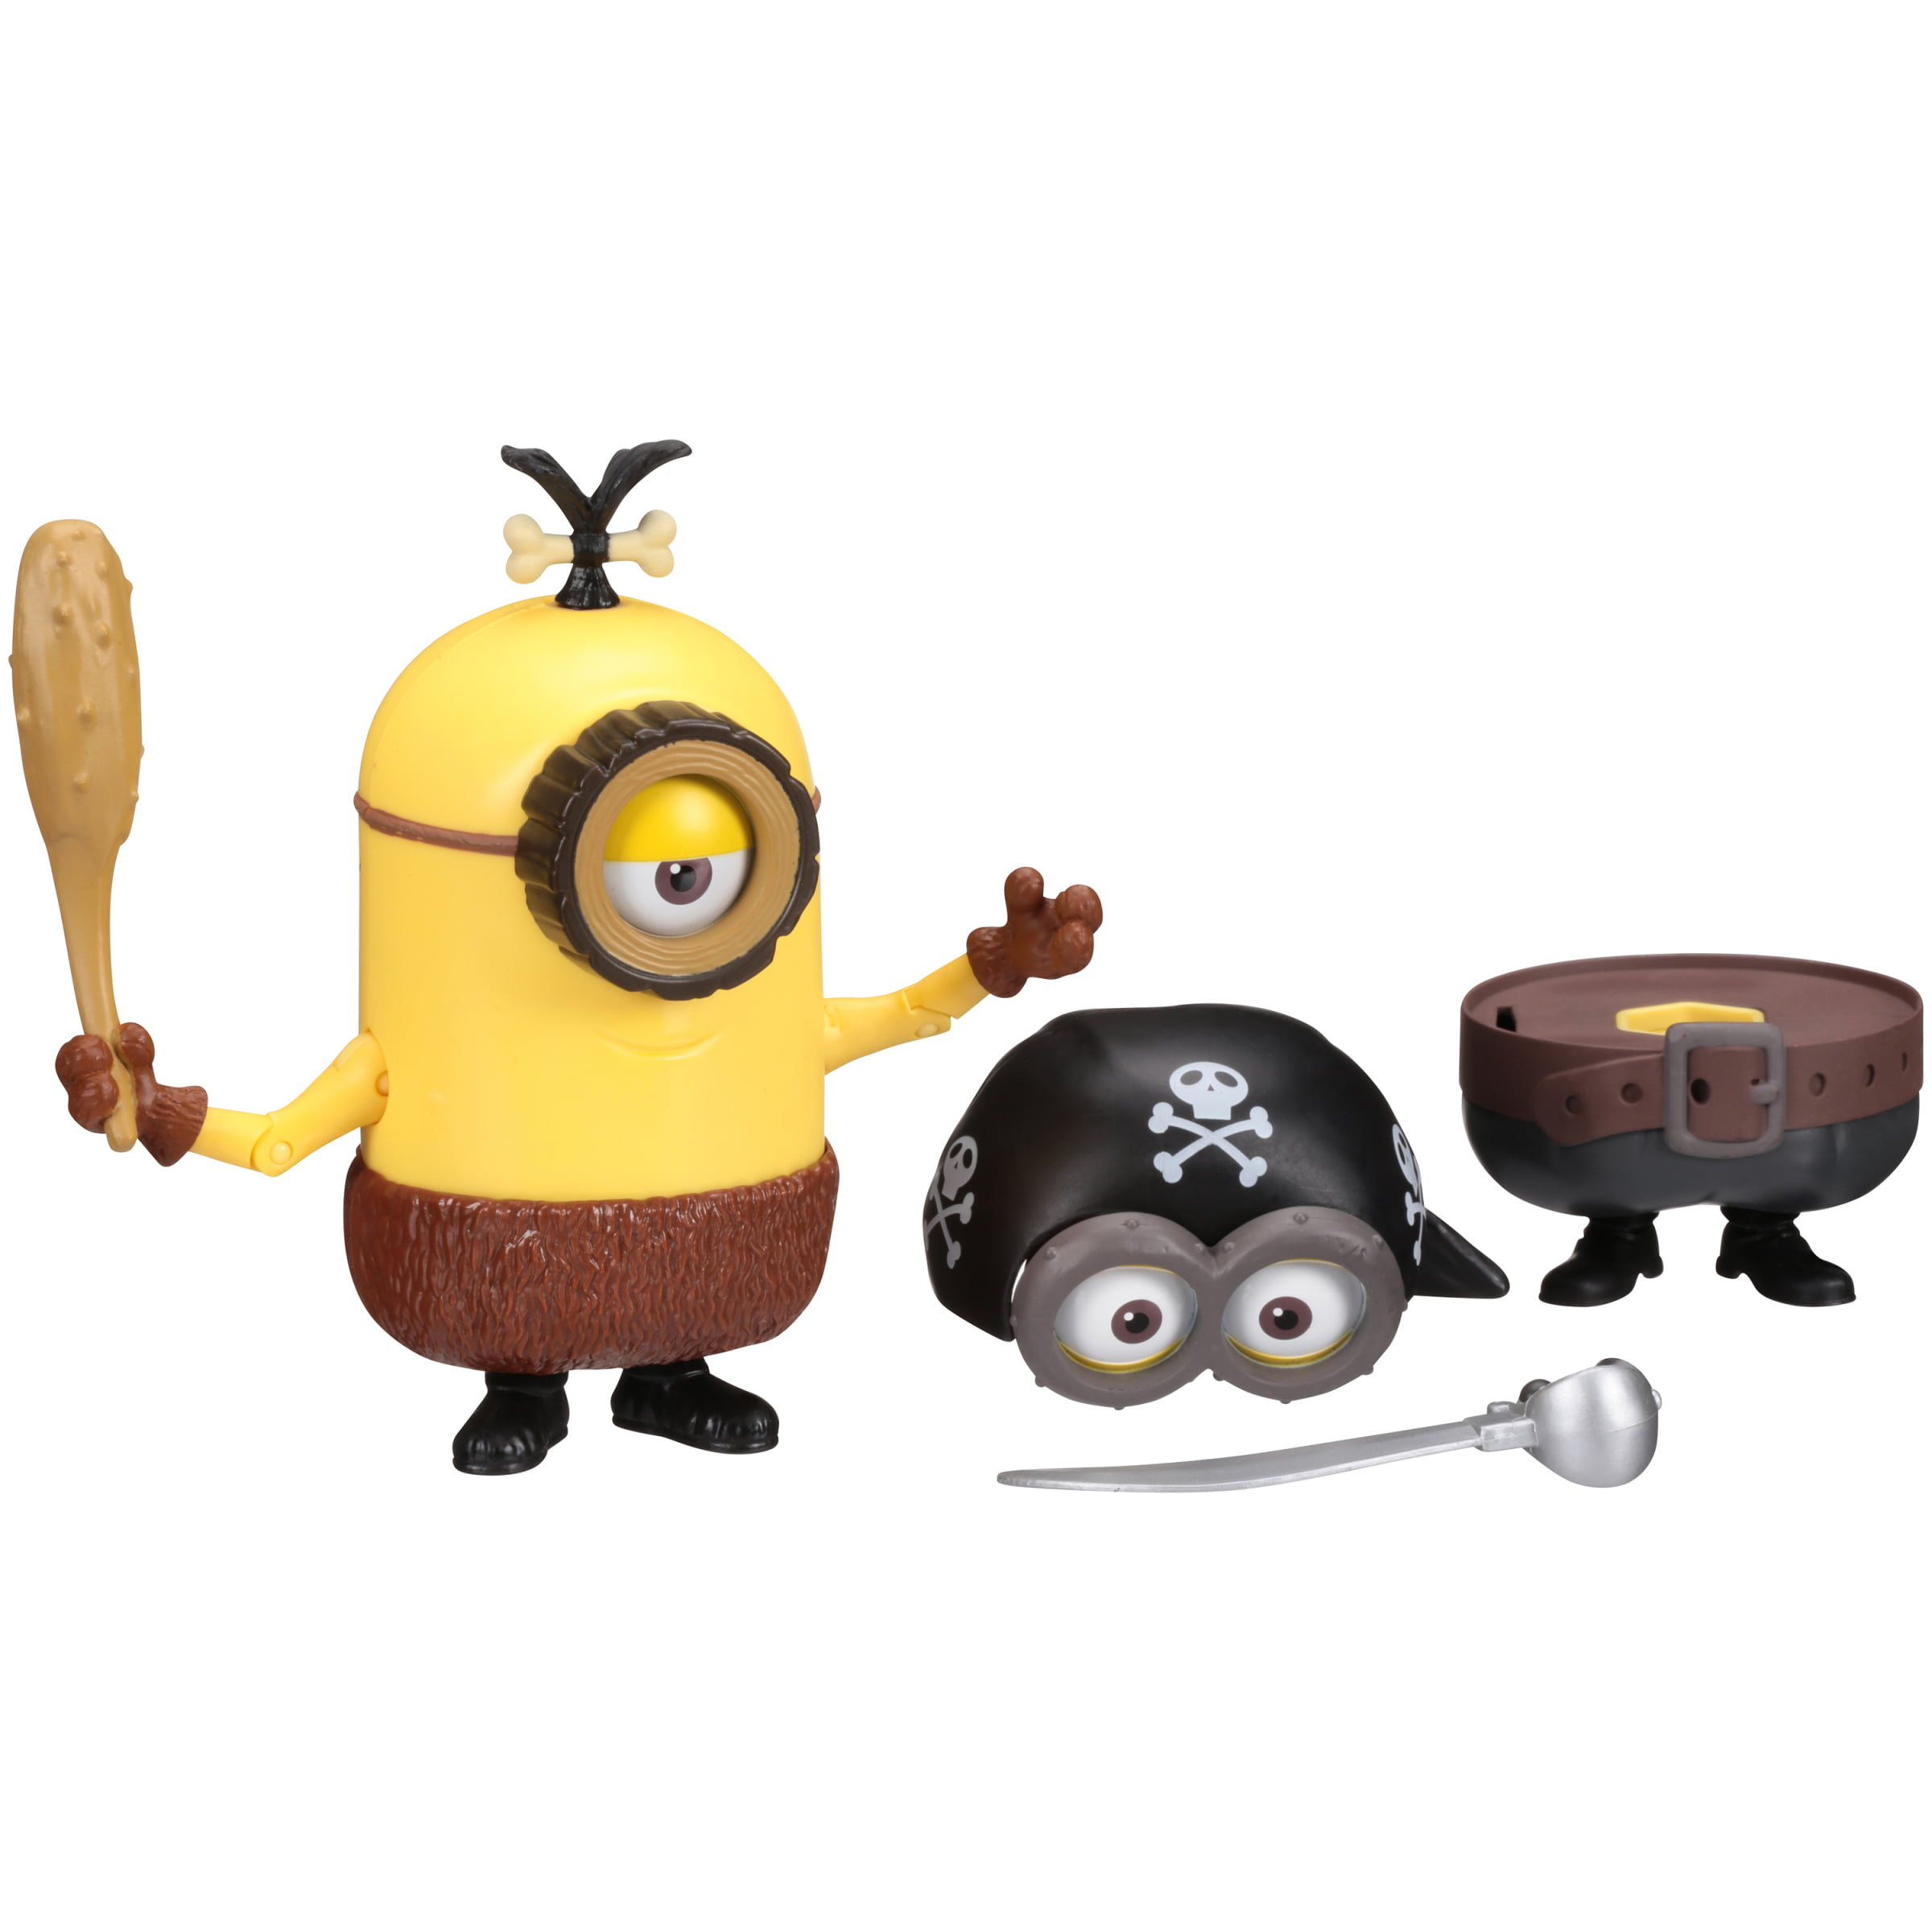 Minions Build-a-Minion Pirate Cro-Minion Figure 12 pc Carded Pack by Thinkway Toys